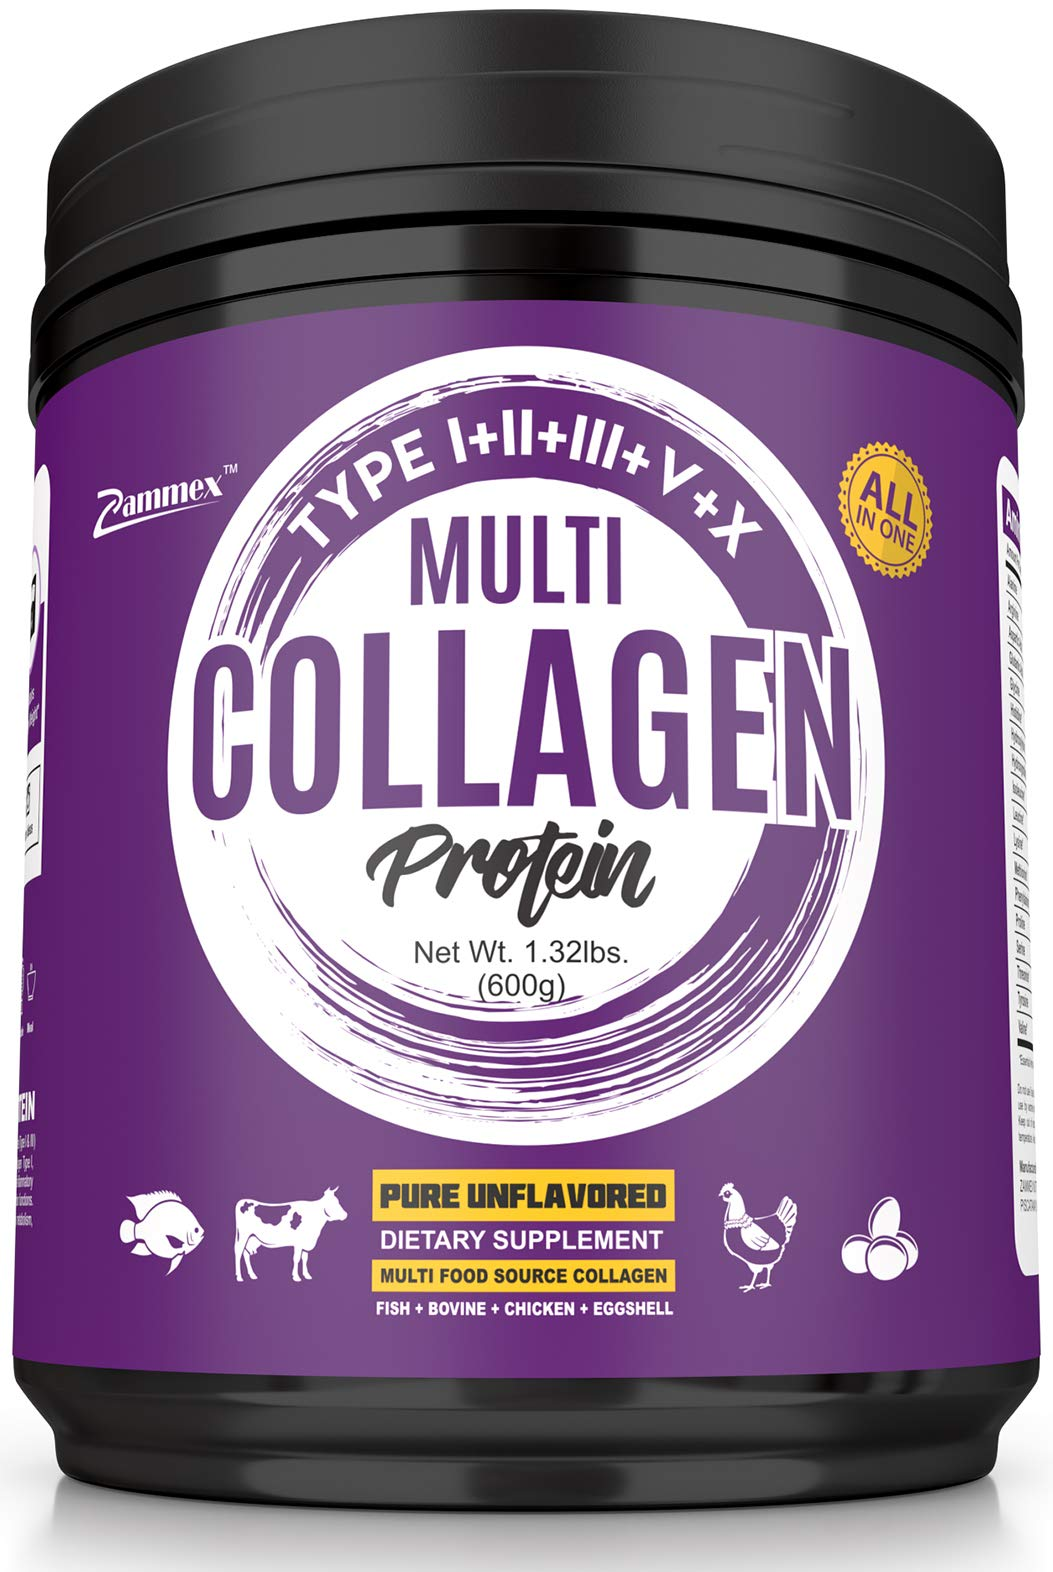 Multi Collagen Protein Powder - Blend of Grass-Fed Beef, Wild Fish, Chicken Cartilage, Eggshell Collagen Peptides - Type I, II, III, V and X, All in one Collagen Supplement. Keto Friendly, 21 Ounces